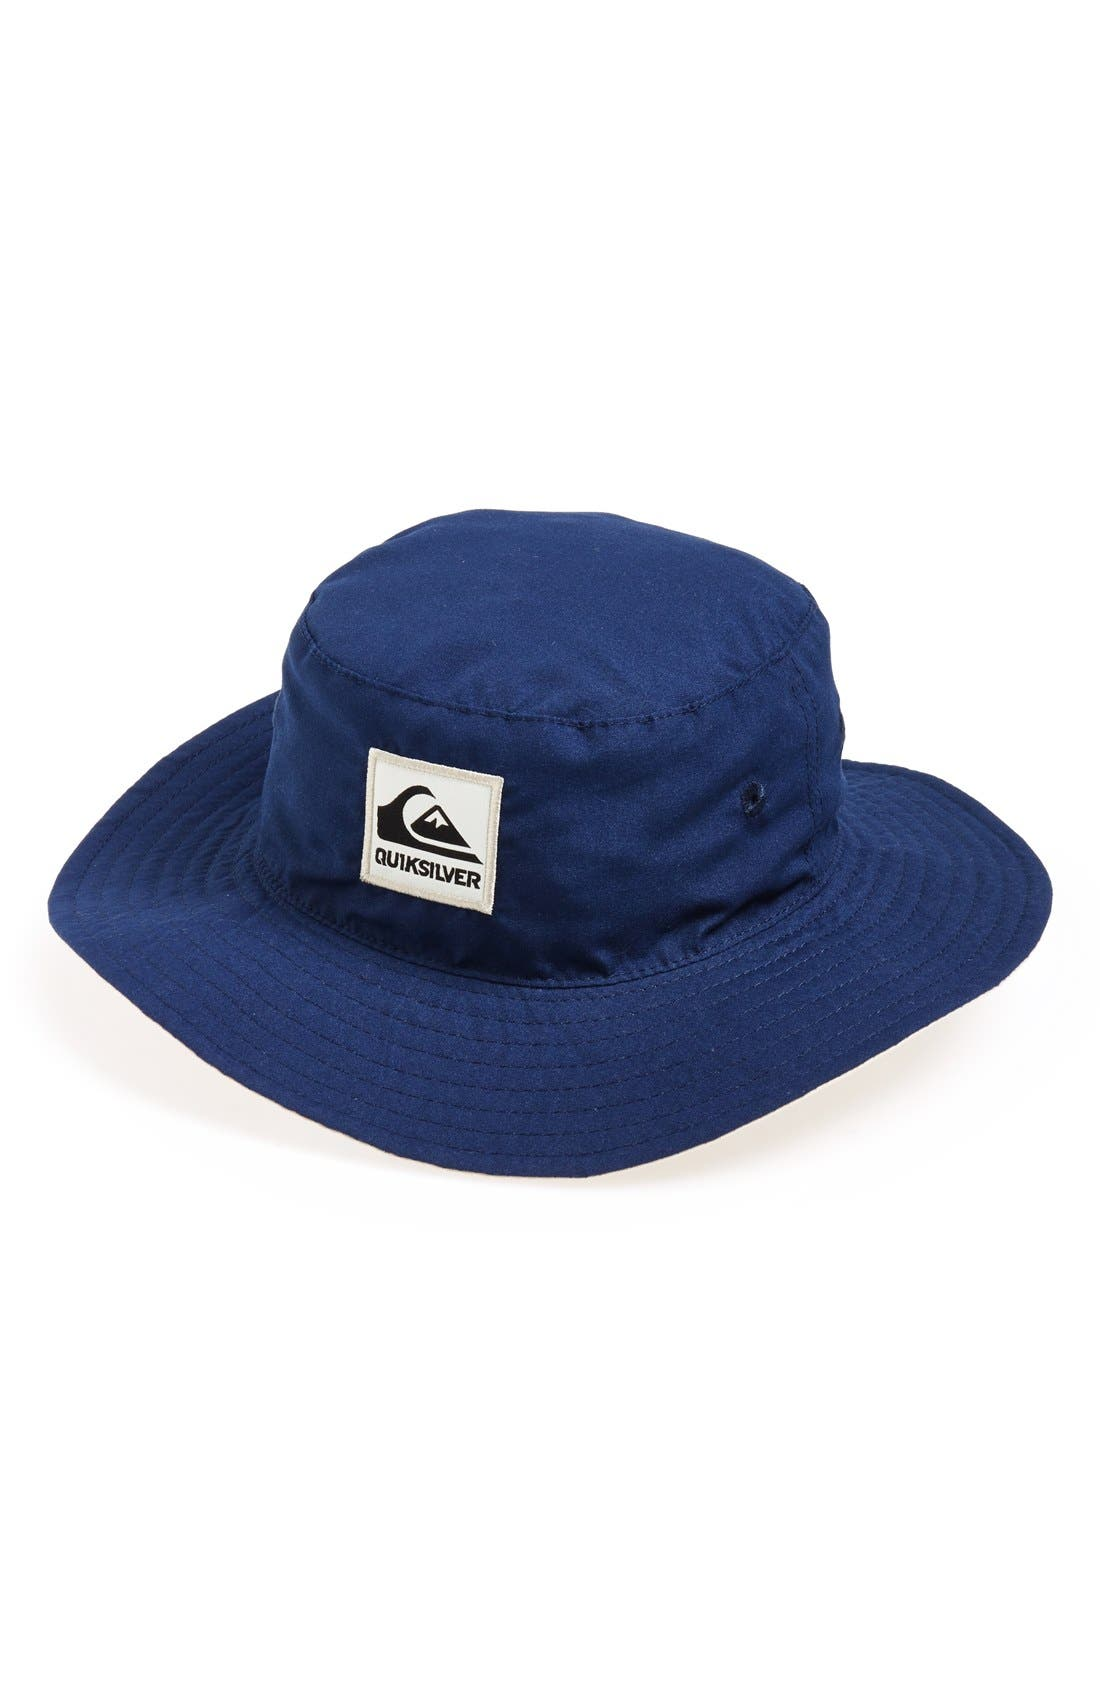 Alternate Image 1 Selected - Quiksilver 'Trails' Bucket Hat (Baby Boys)